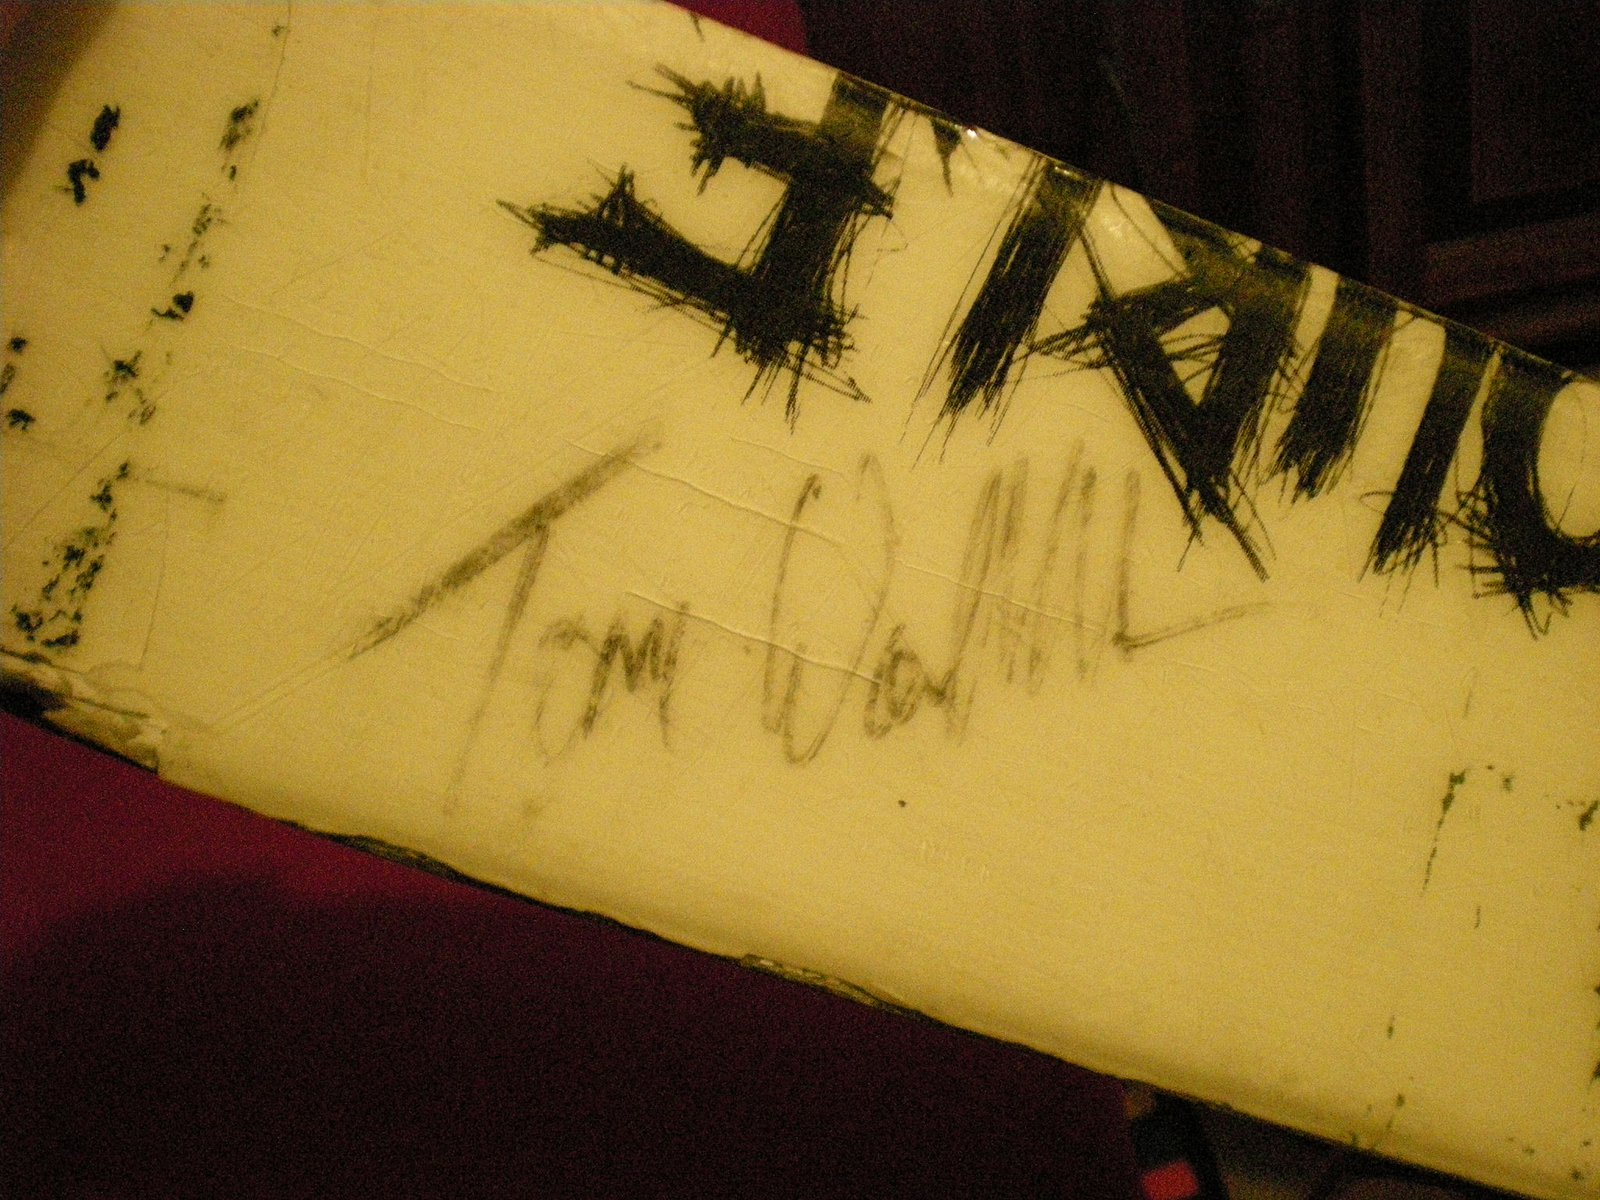 Signed by T-wall 2